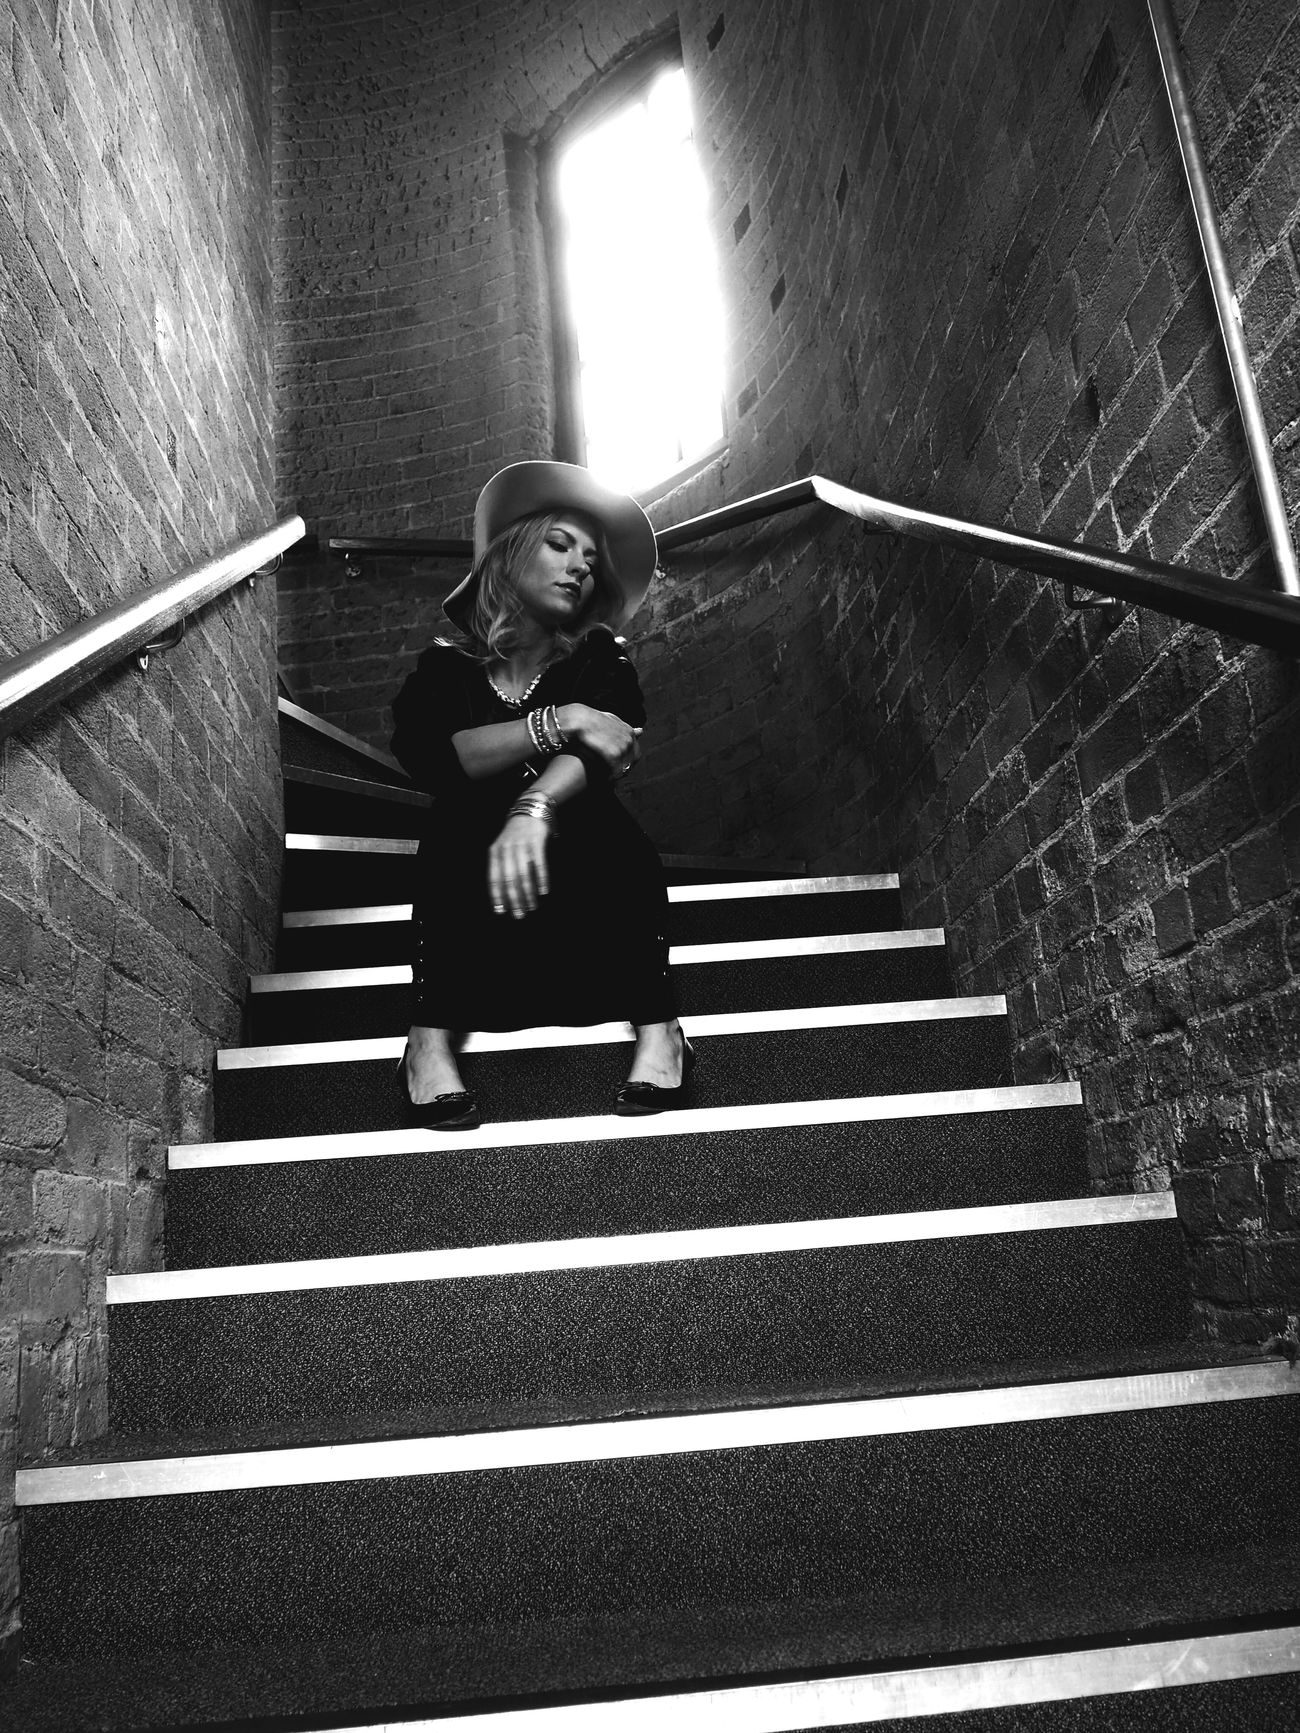 Stairs Staircase Steps One Person Indoors  Light And Shadow Window Full Length Stairs Real People Lifestyles Casual Clothing Leisure Activity Built Structure Girls Looking At Camera Portrait Childhood Smiling Architecture Day Young Adult Theportraitist-2017eyeemawards Olympus